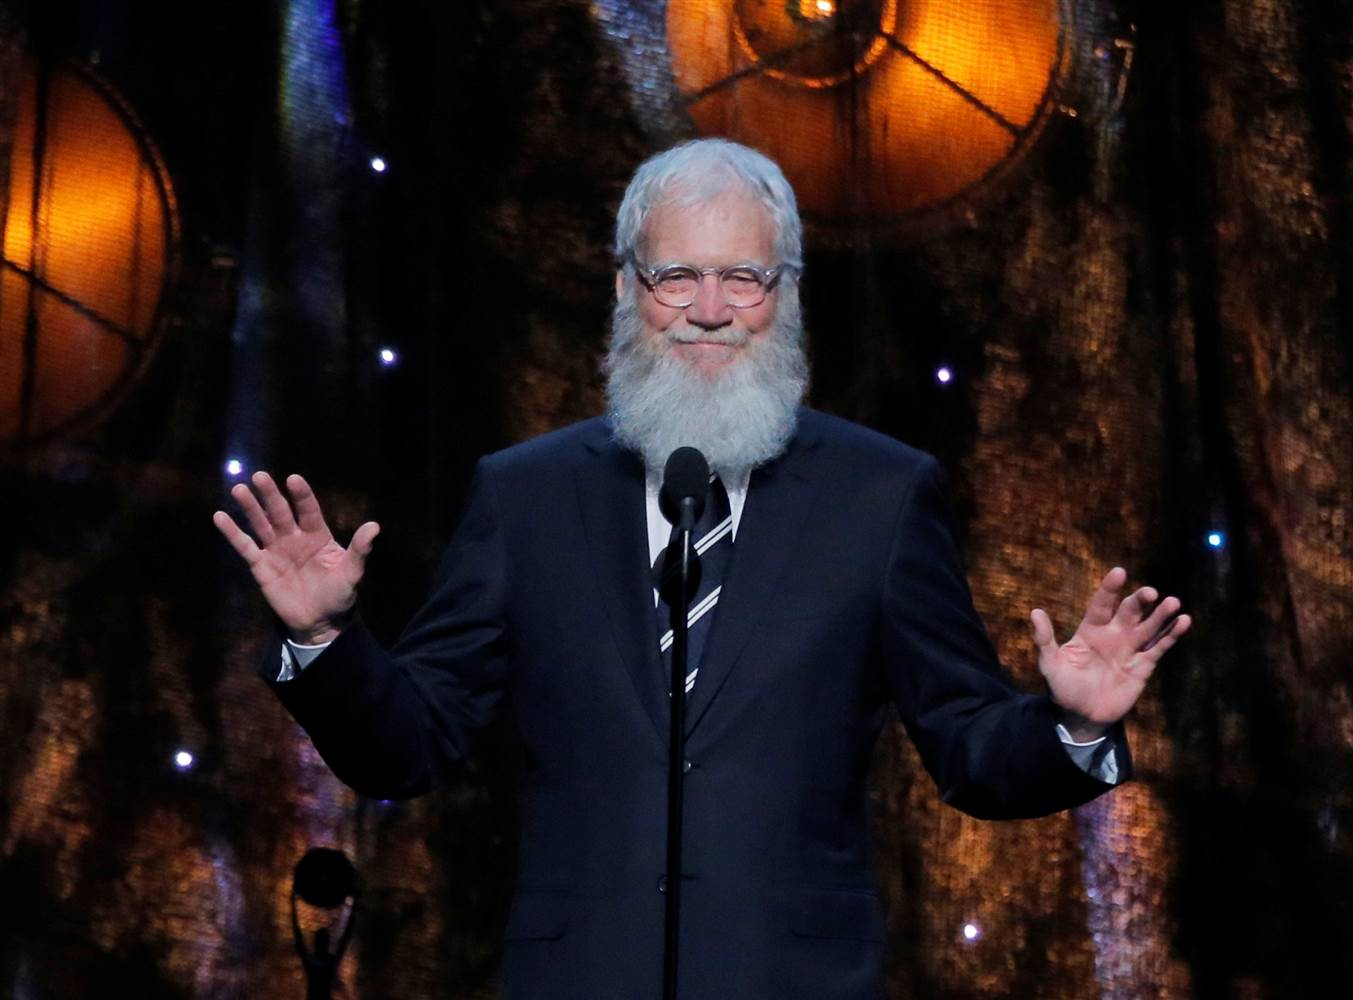 David Letterman Hosted by Netflix in New Series